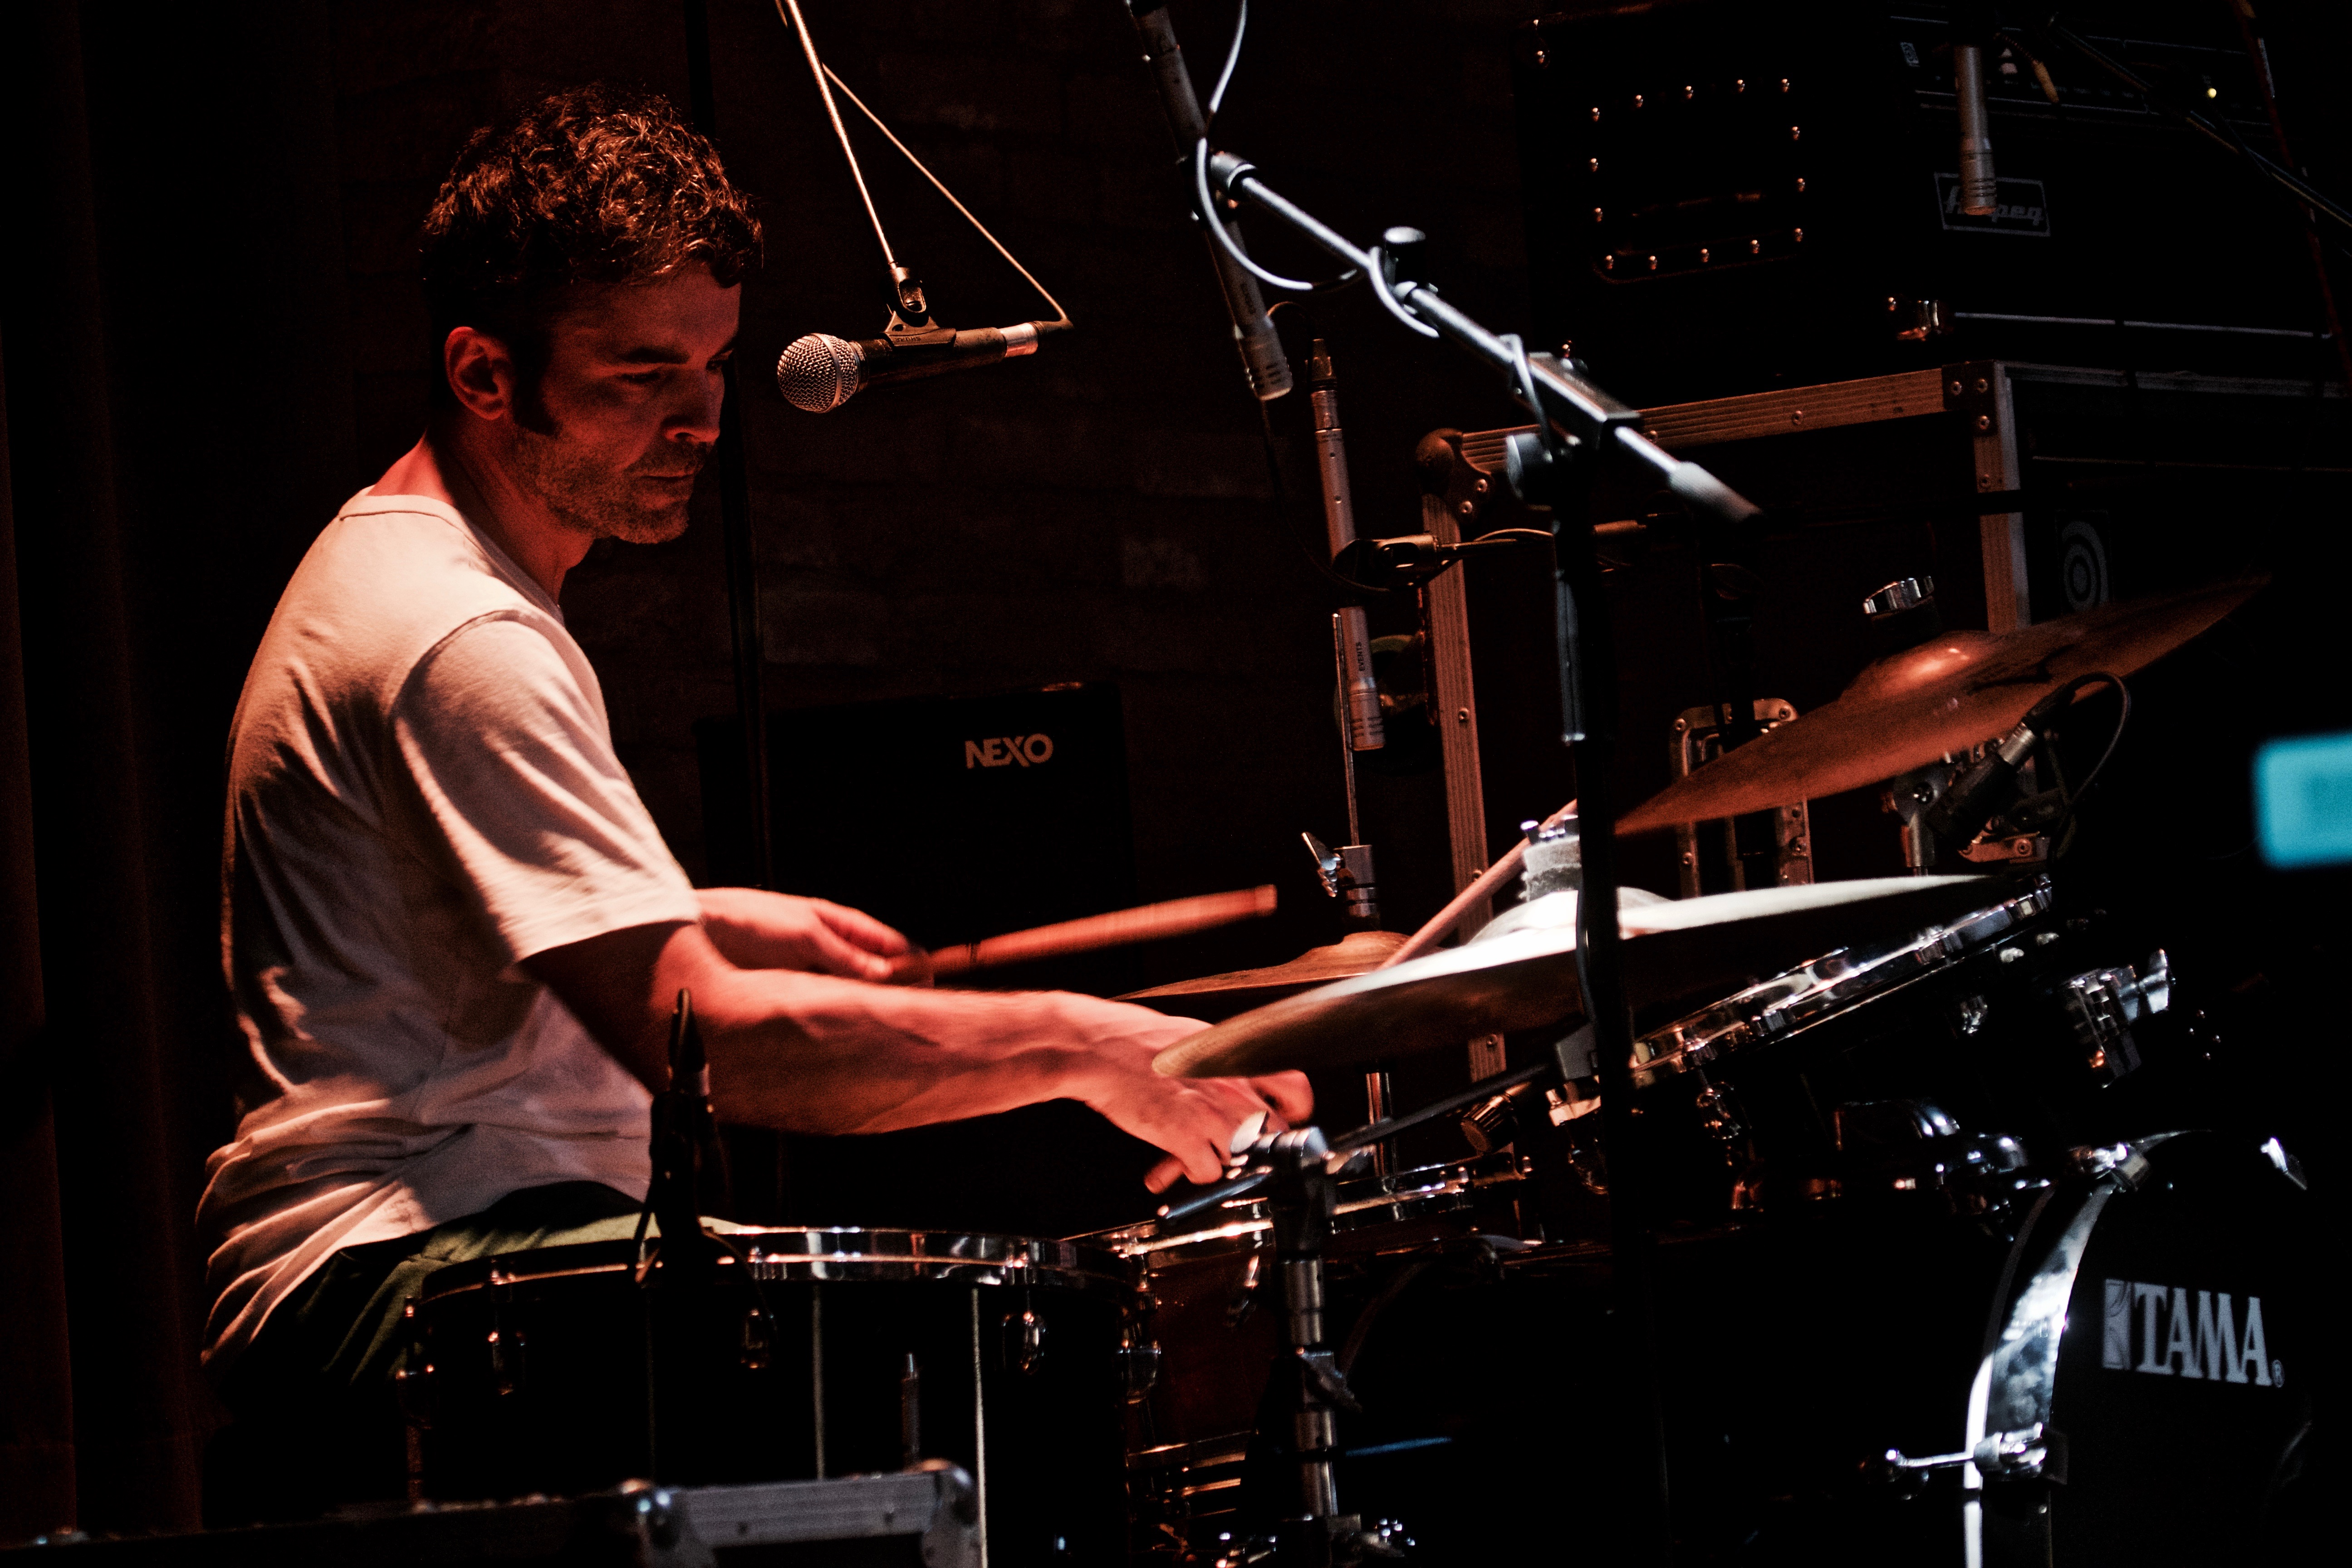 documentary record of musicians on stage - Drummer in action - Drums - registro documental